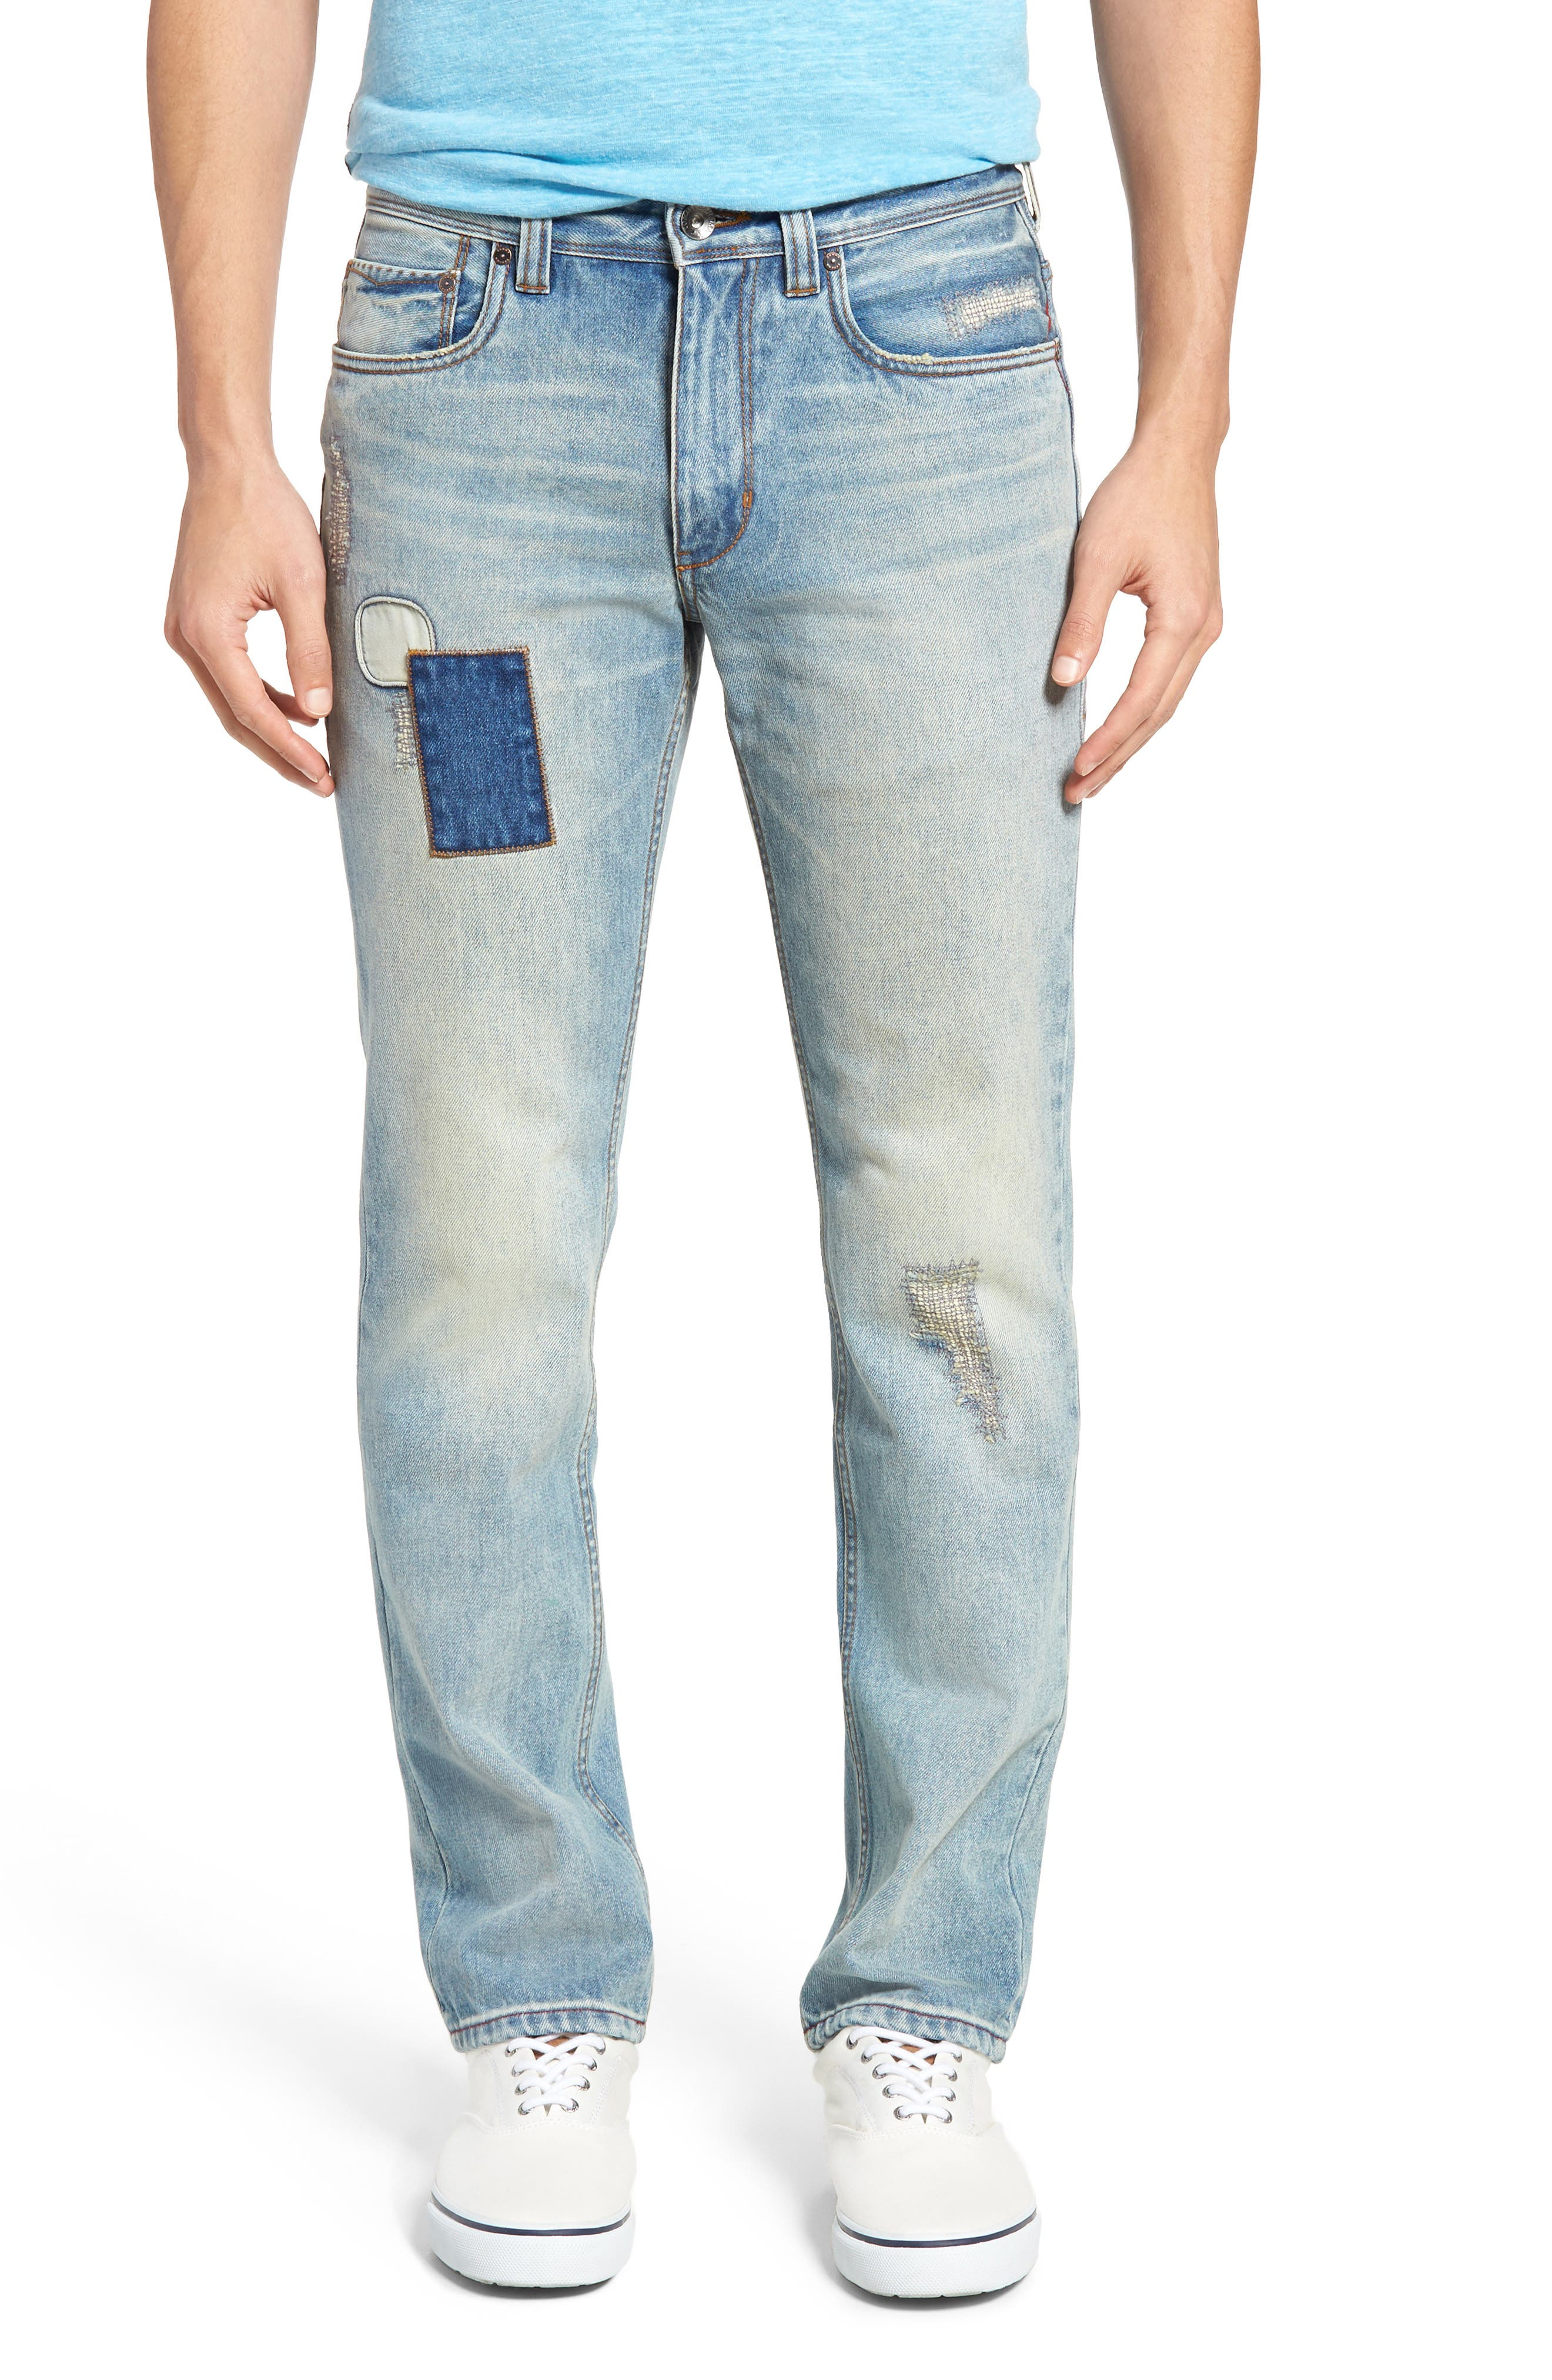 Castaway Slim Fit Jeans,                             Main thumbnail 1, color,                             400